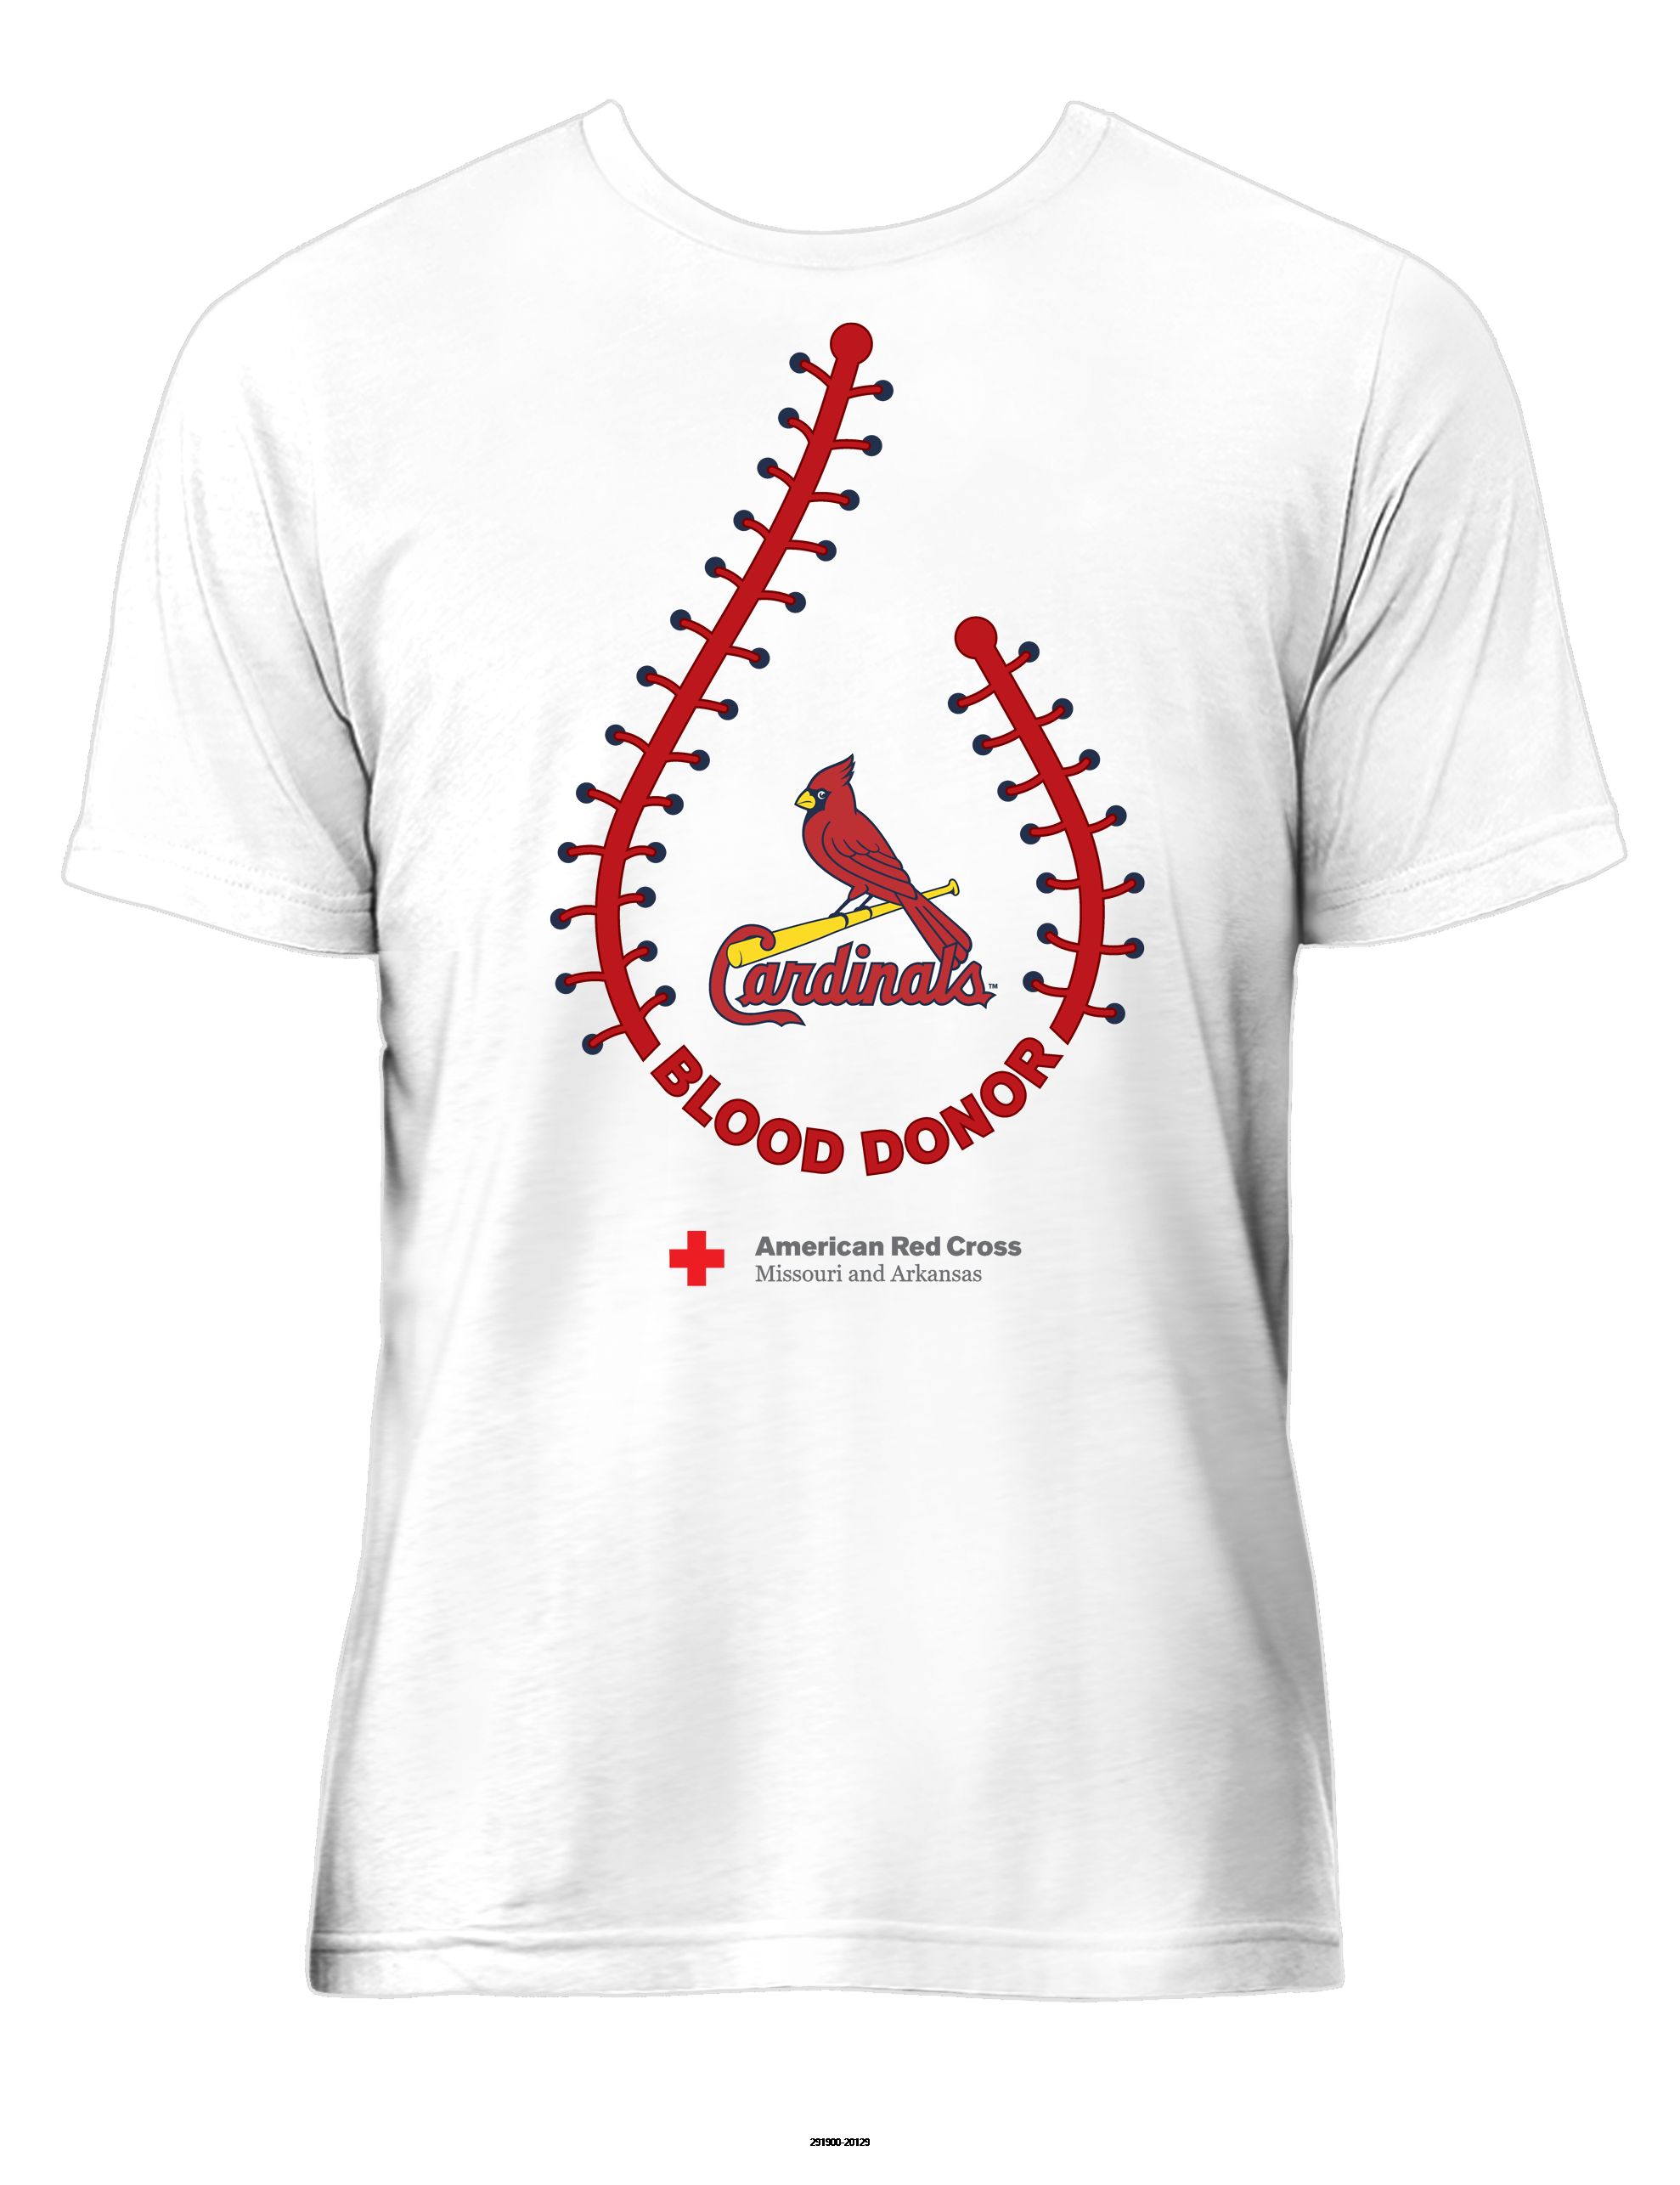 18th Annual St. Louis Cardinals Blood Drive June 15-17